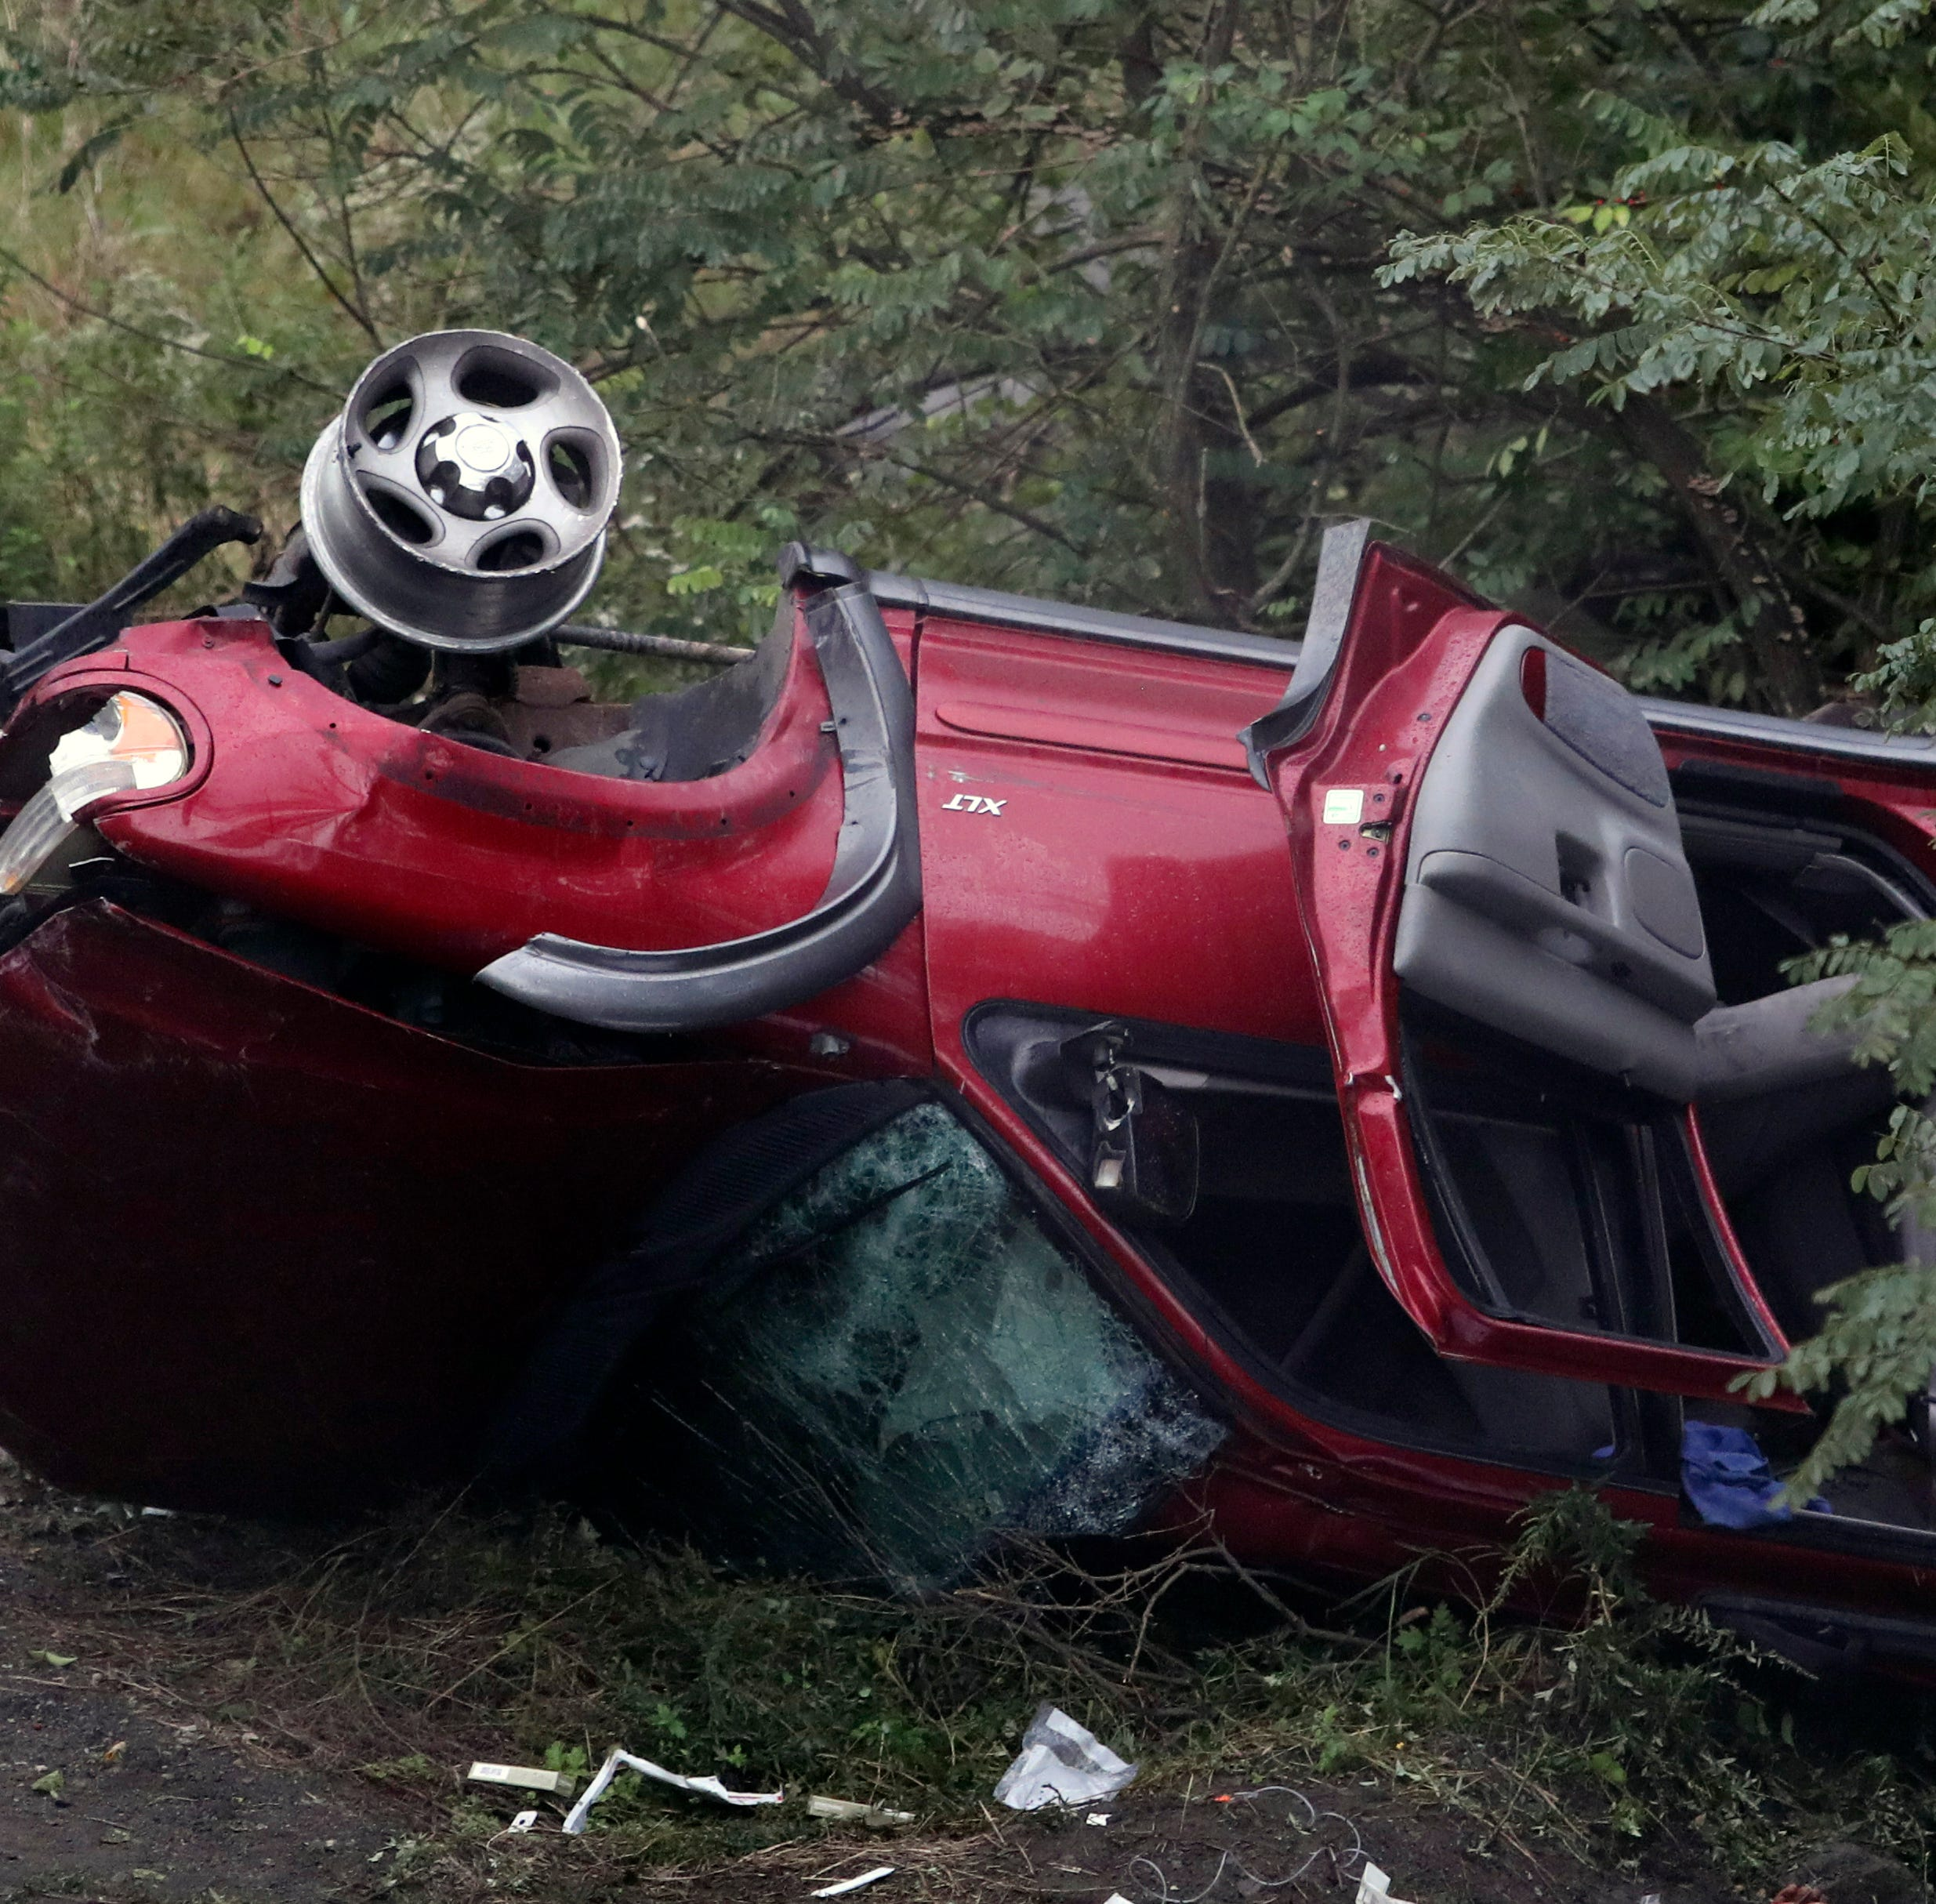 Vehicle plunges down embankment at Naamans Road near Claymont